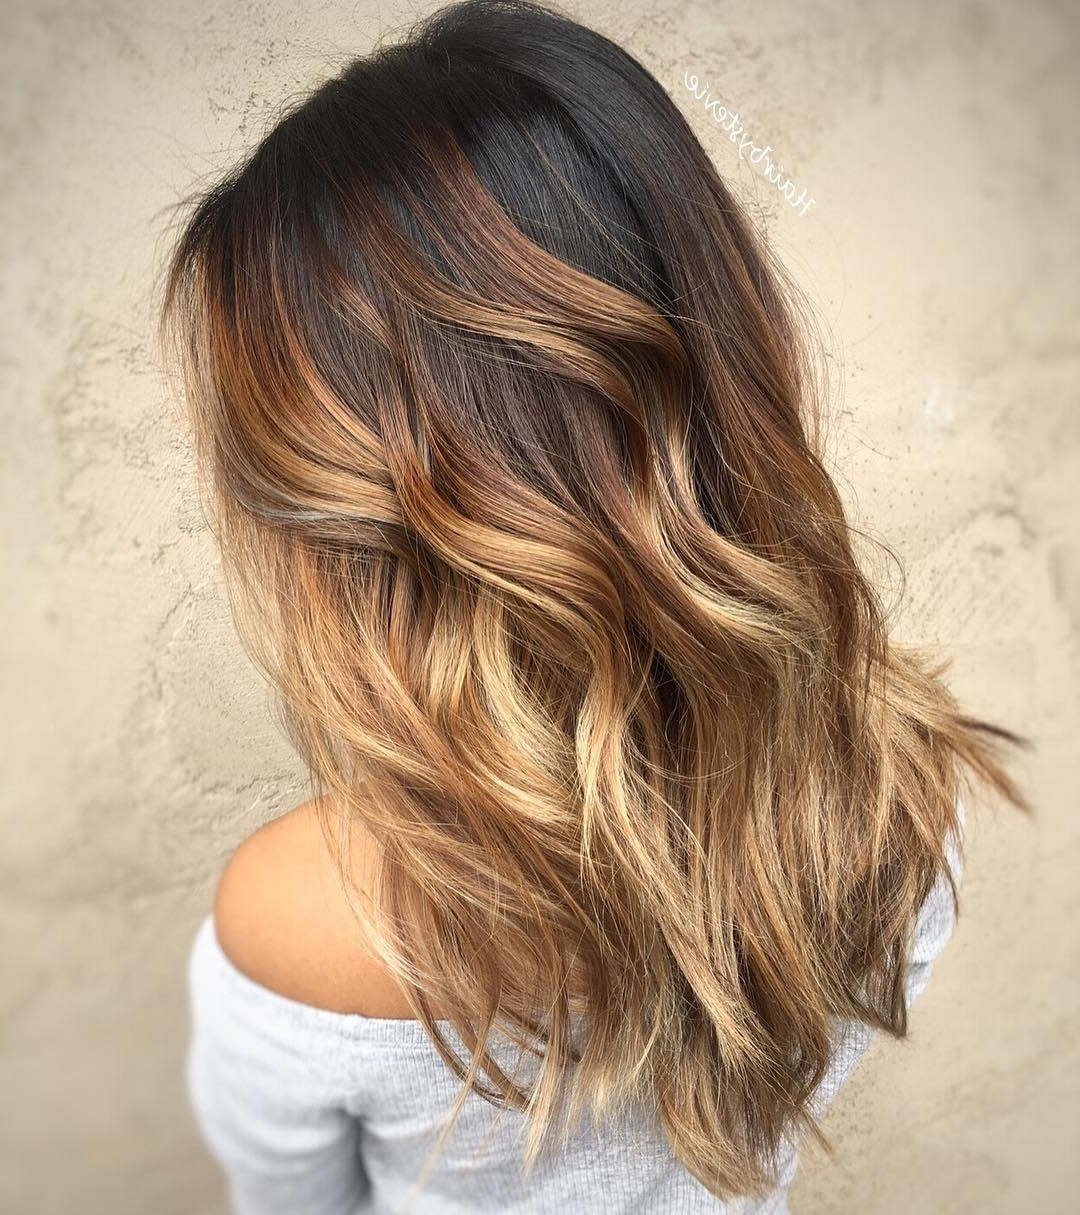 Latest Caramel Blonde Hairstyles Within 20 Sweet Caramel Balayage Hairstyles For Brunettes And Beyond (View 12 of 20)